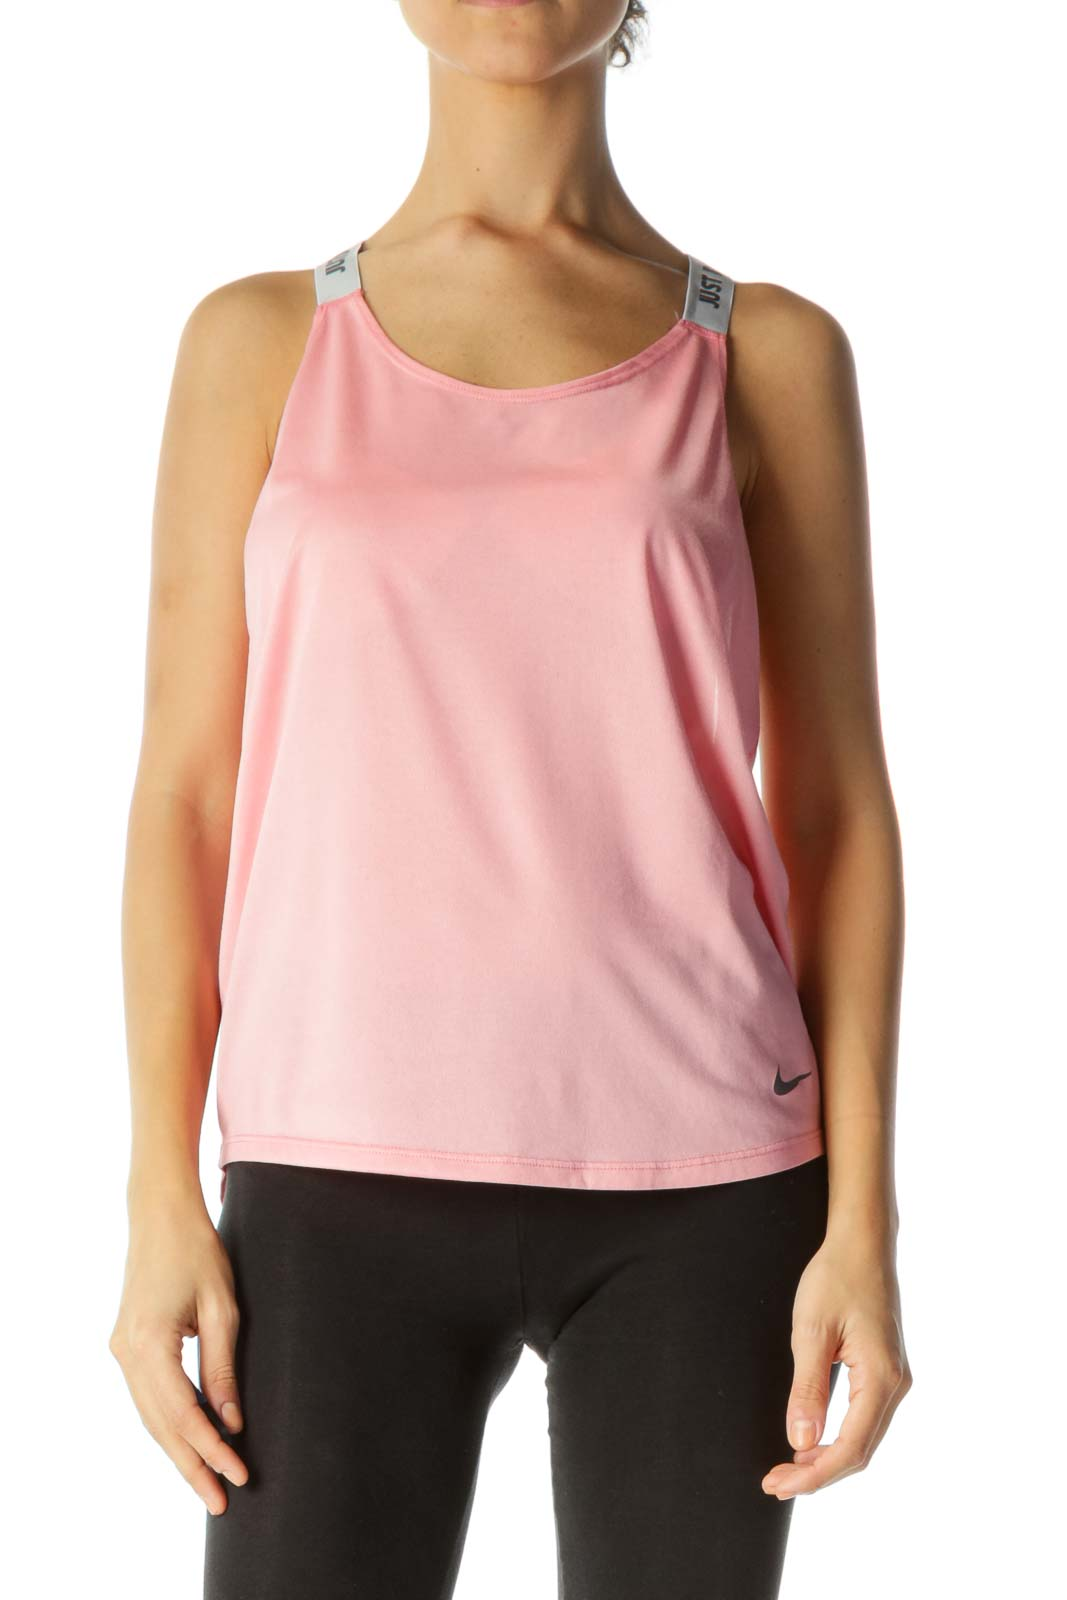 Pink Active-Wear Racer-Back Tank with Gray Logo Straps